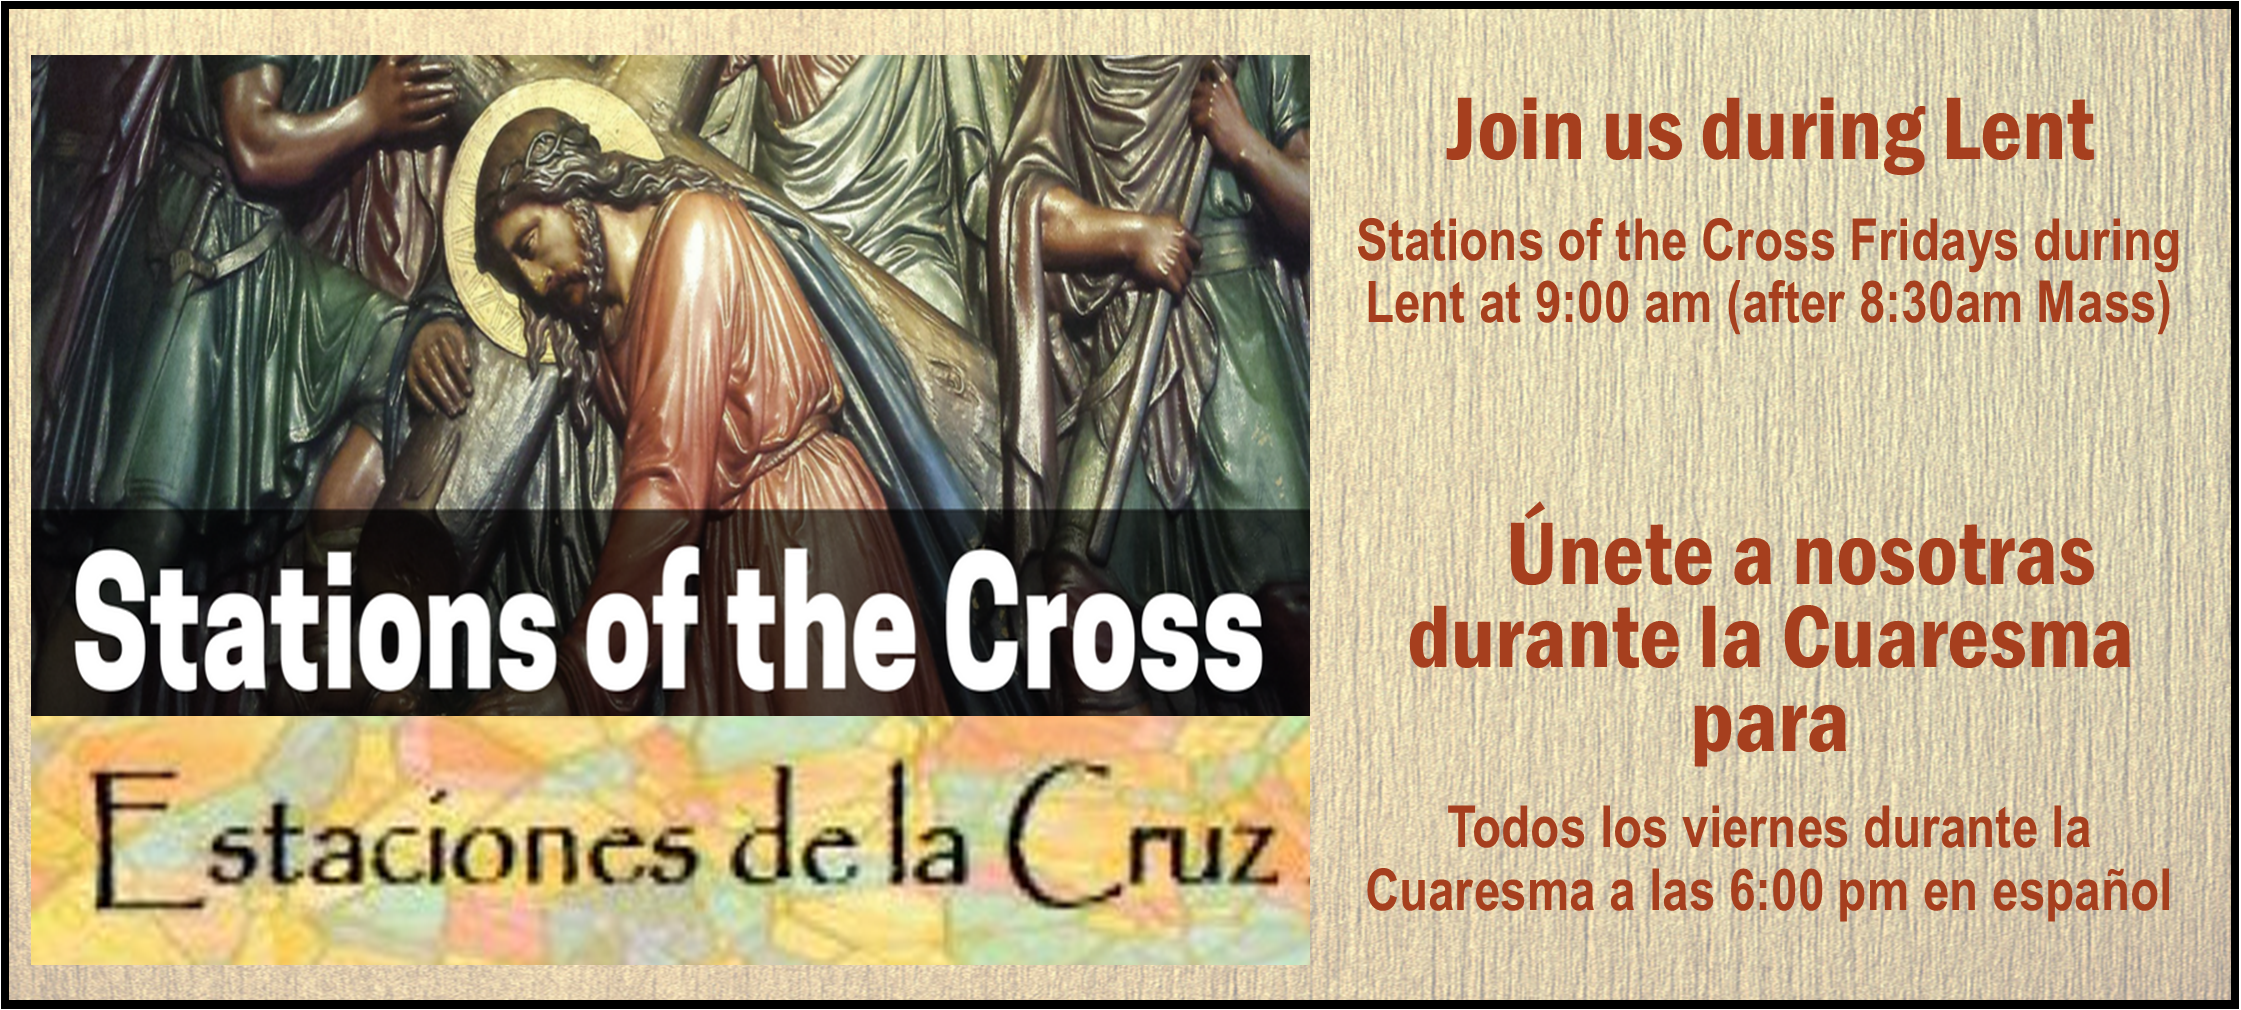 03-02-21 Stations of the Cross